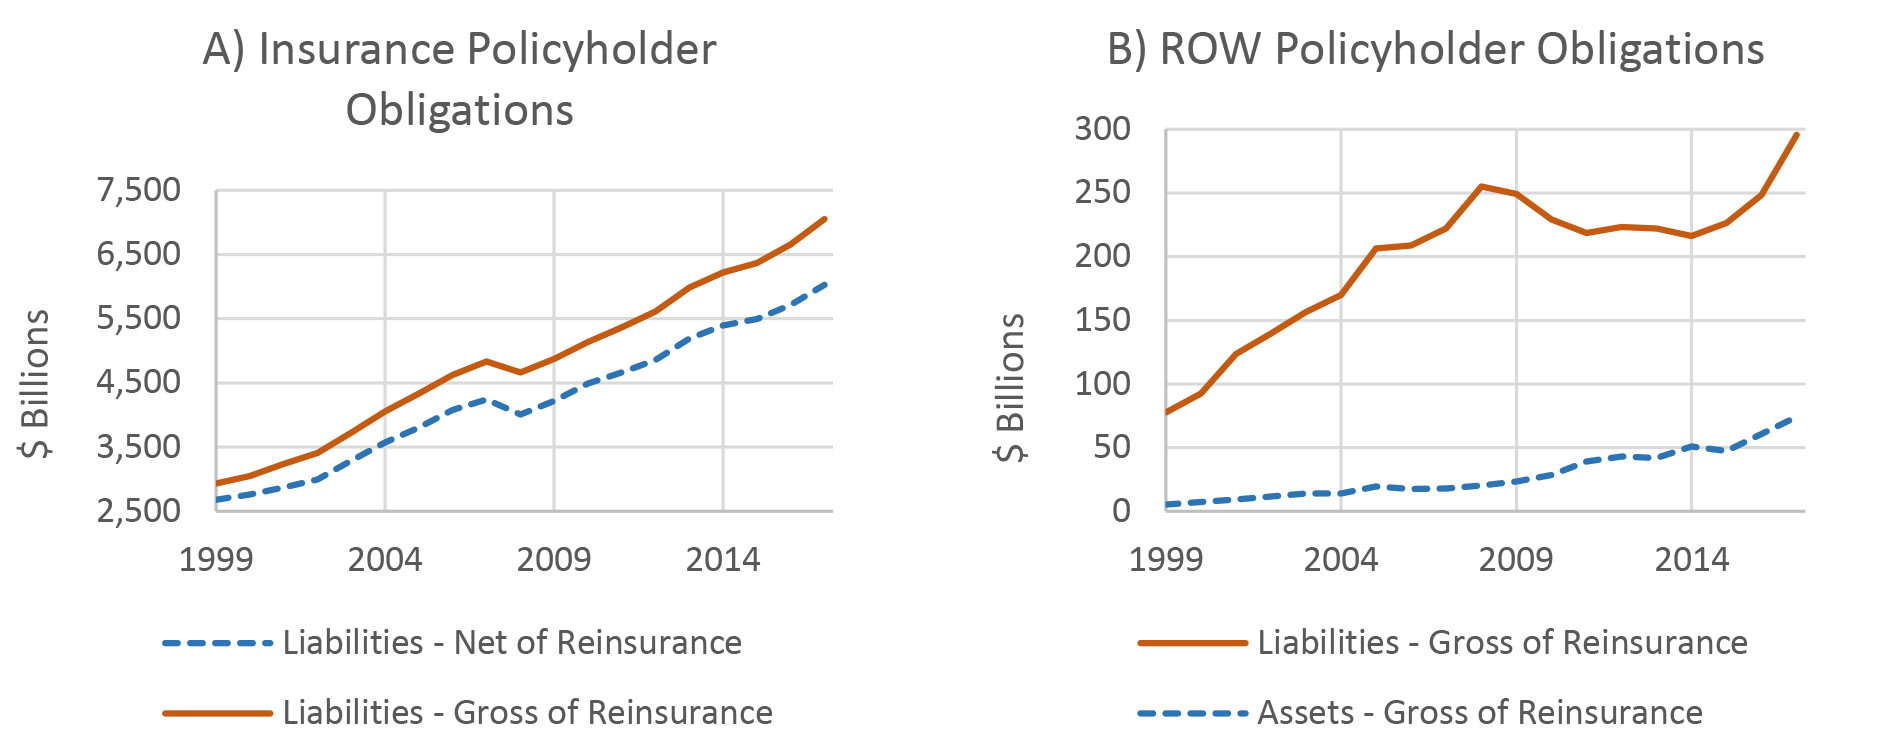 Figure 4. Changes in Policyholder Obligations due to Reinsurance for the Insurance and ROW Sectors. See accessible link for data description.